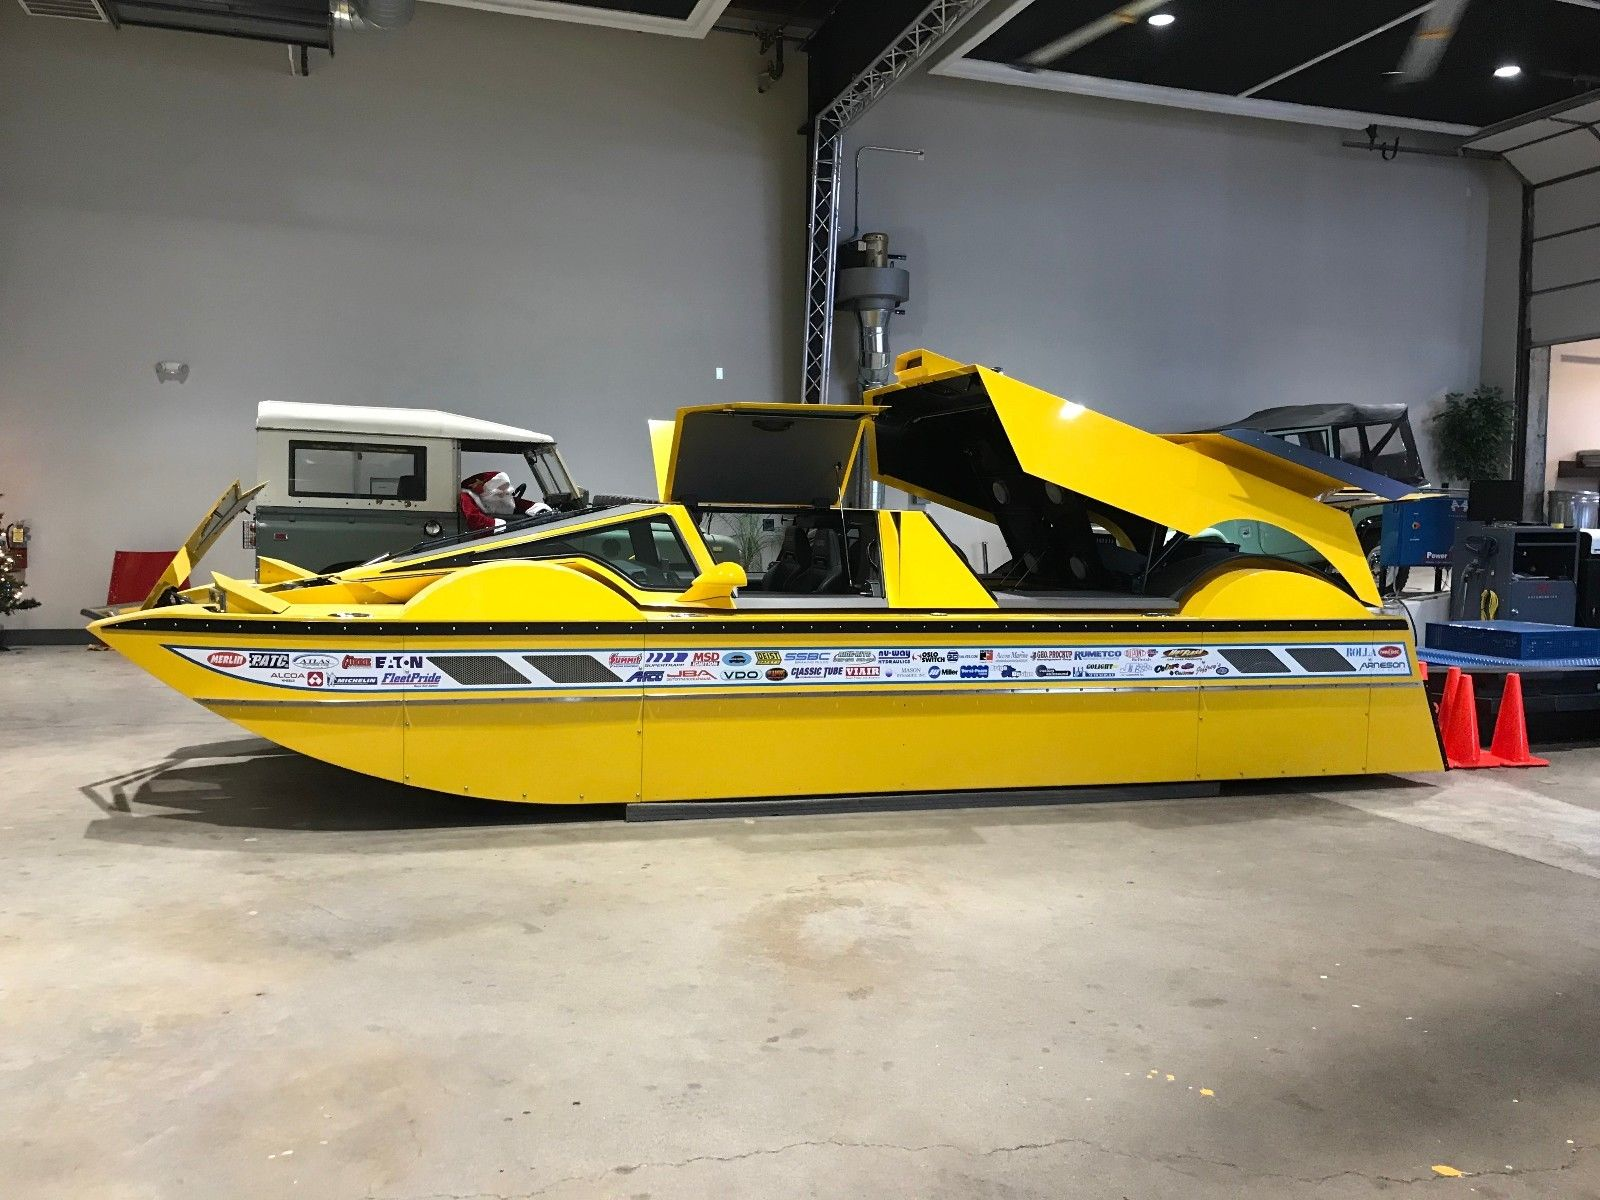 Ebay Listing Is Both A Car And A Boat The Drive